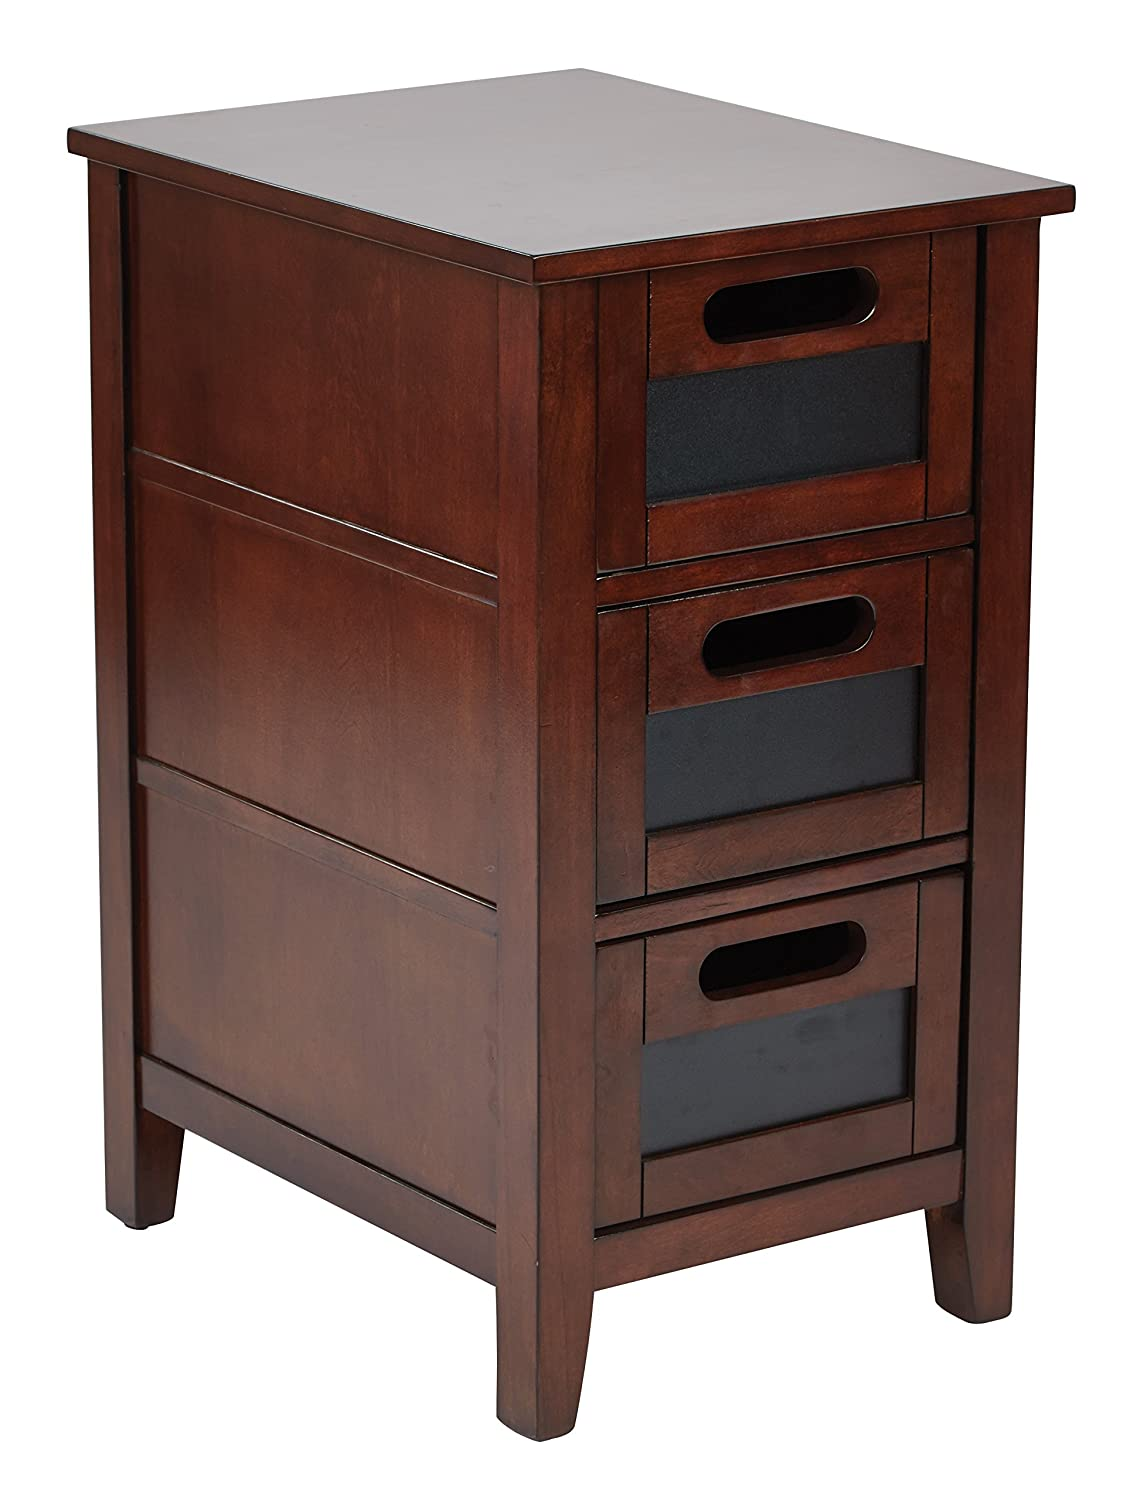 Amazon.com: Office Star Avery Chair Side Table With 3 Drawers With  Chackboard Fronts, Saddle Finish: Kitchen U0026 Dining